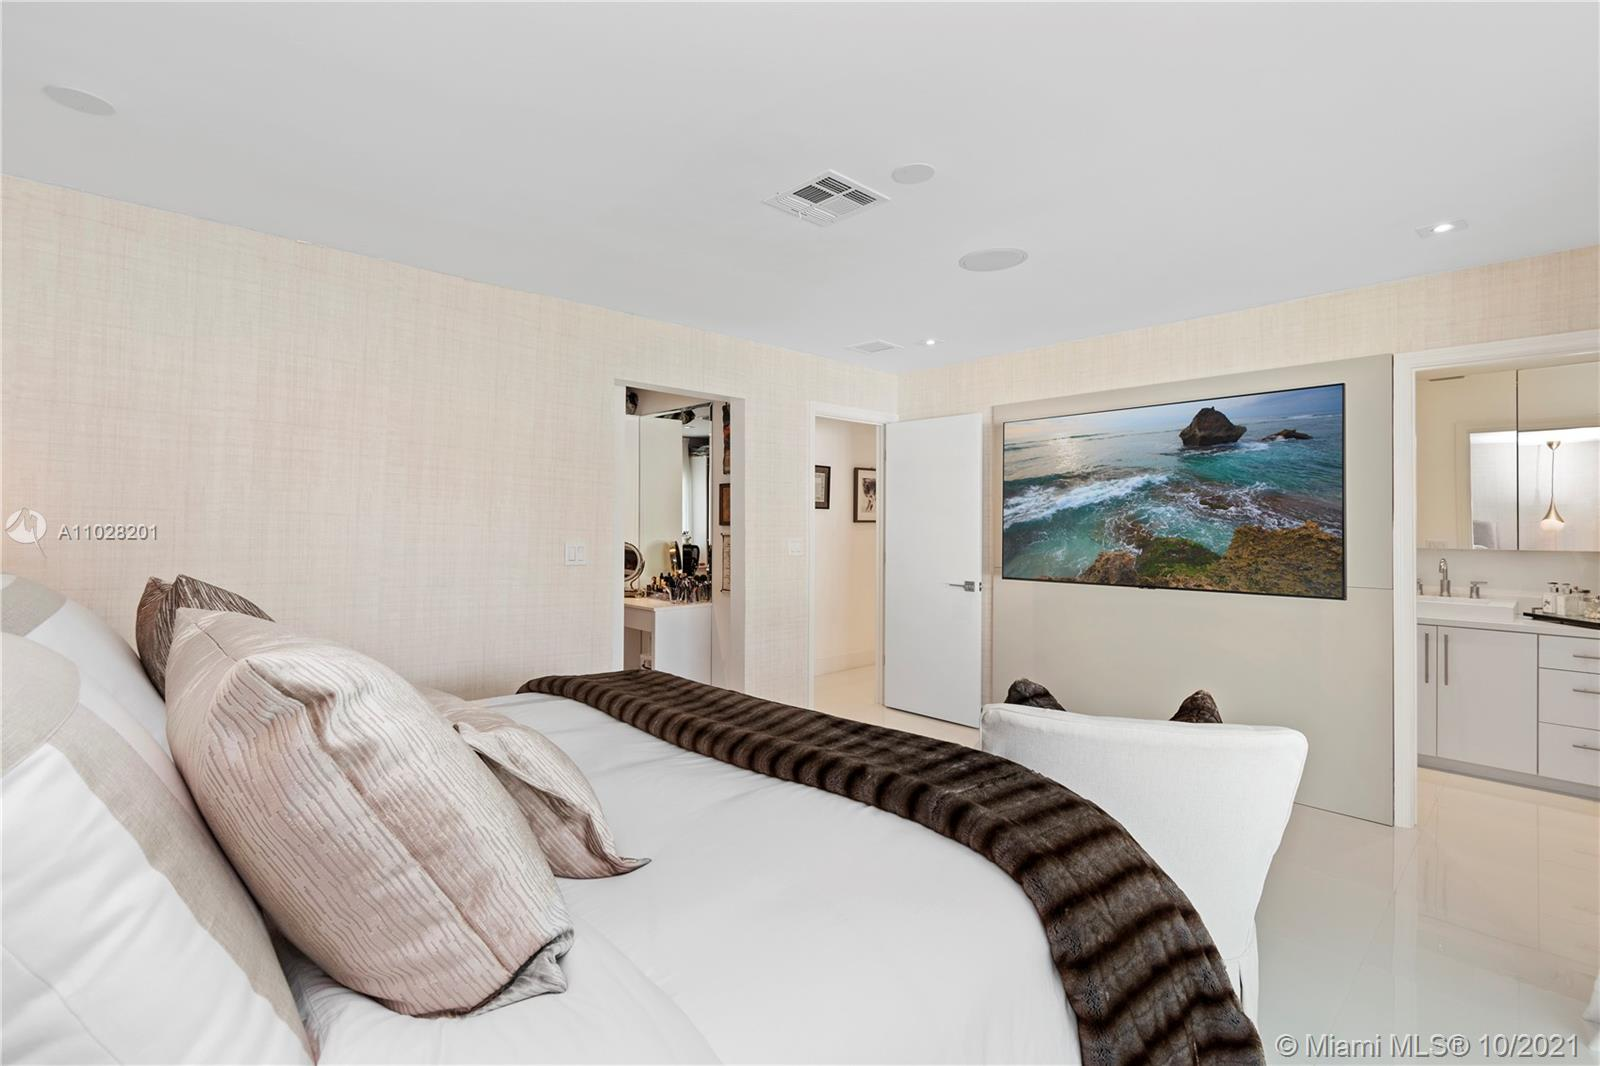 Spacious Master Bedroom with access to the backyard